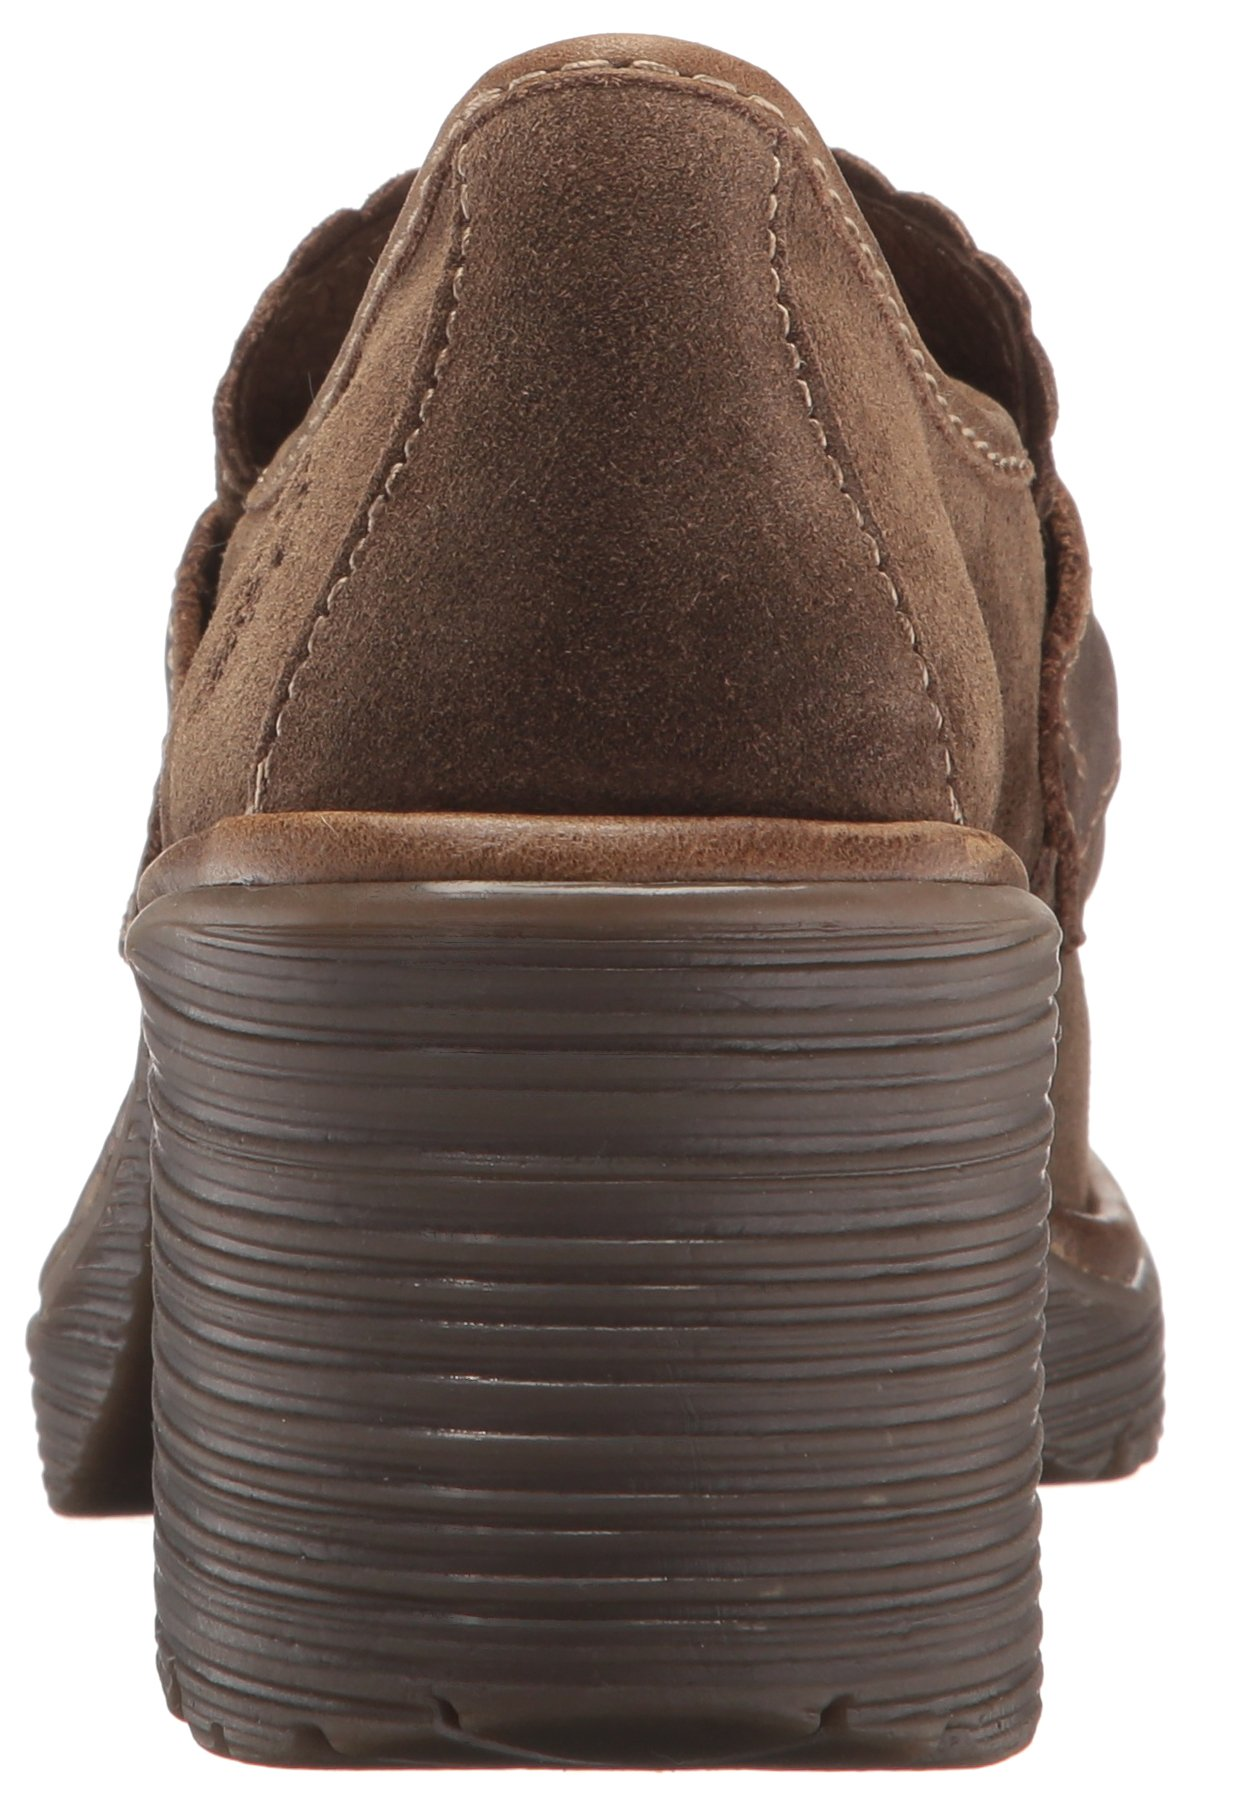 FLY London Women's WEND764FLY Penny Loafer, Sludge/Olive Oil Suede/Rug, 39 M EU (8-8.5 US) by FLY London (Image #2)